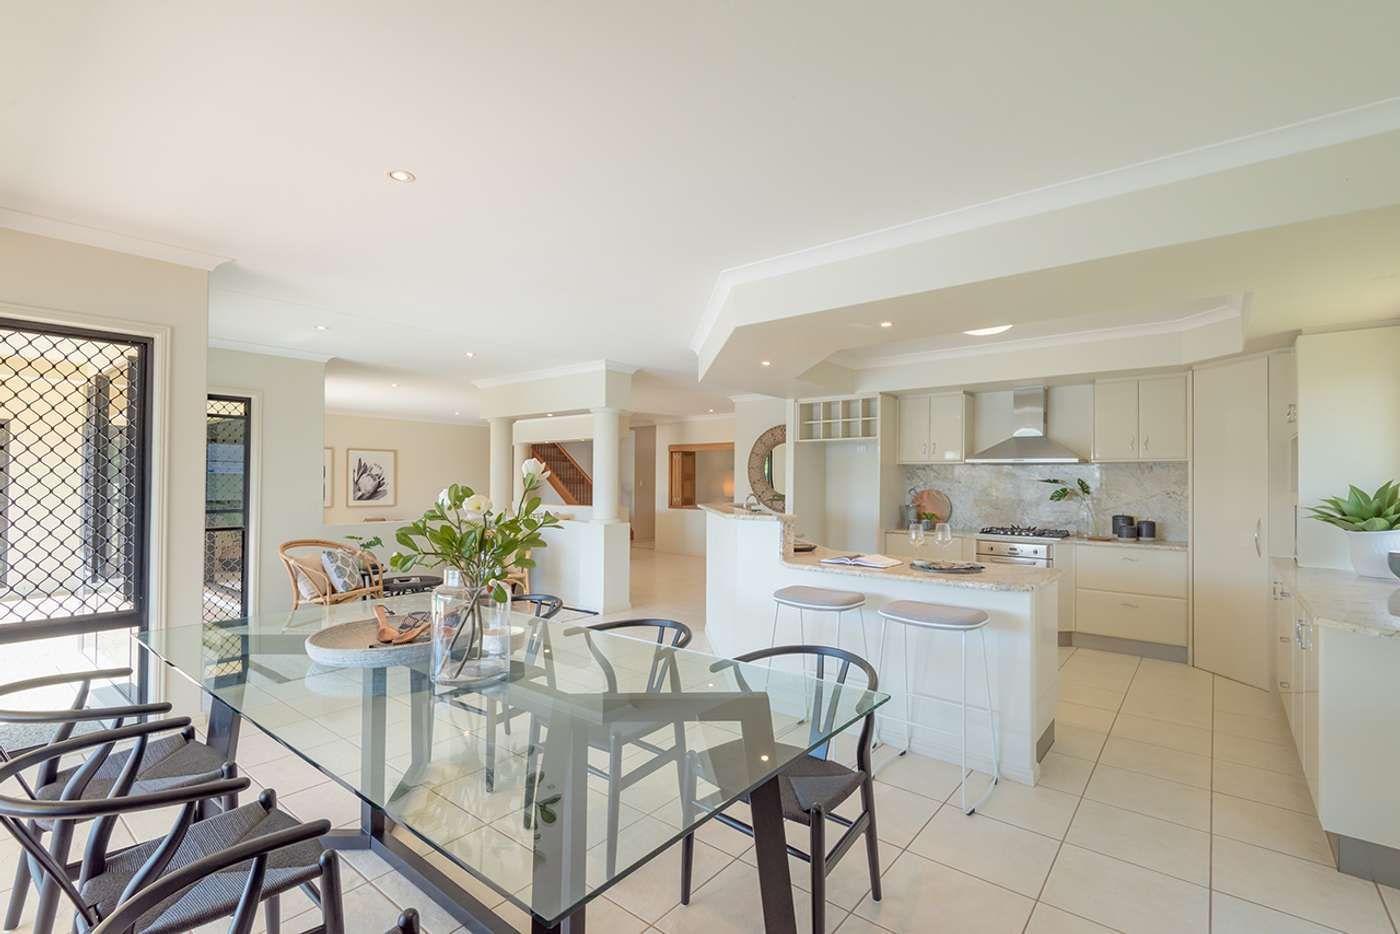 Fifth view of Homely house listing, 9 Mizzen Pl, Twin Waters QLD 4564